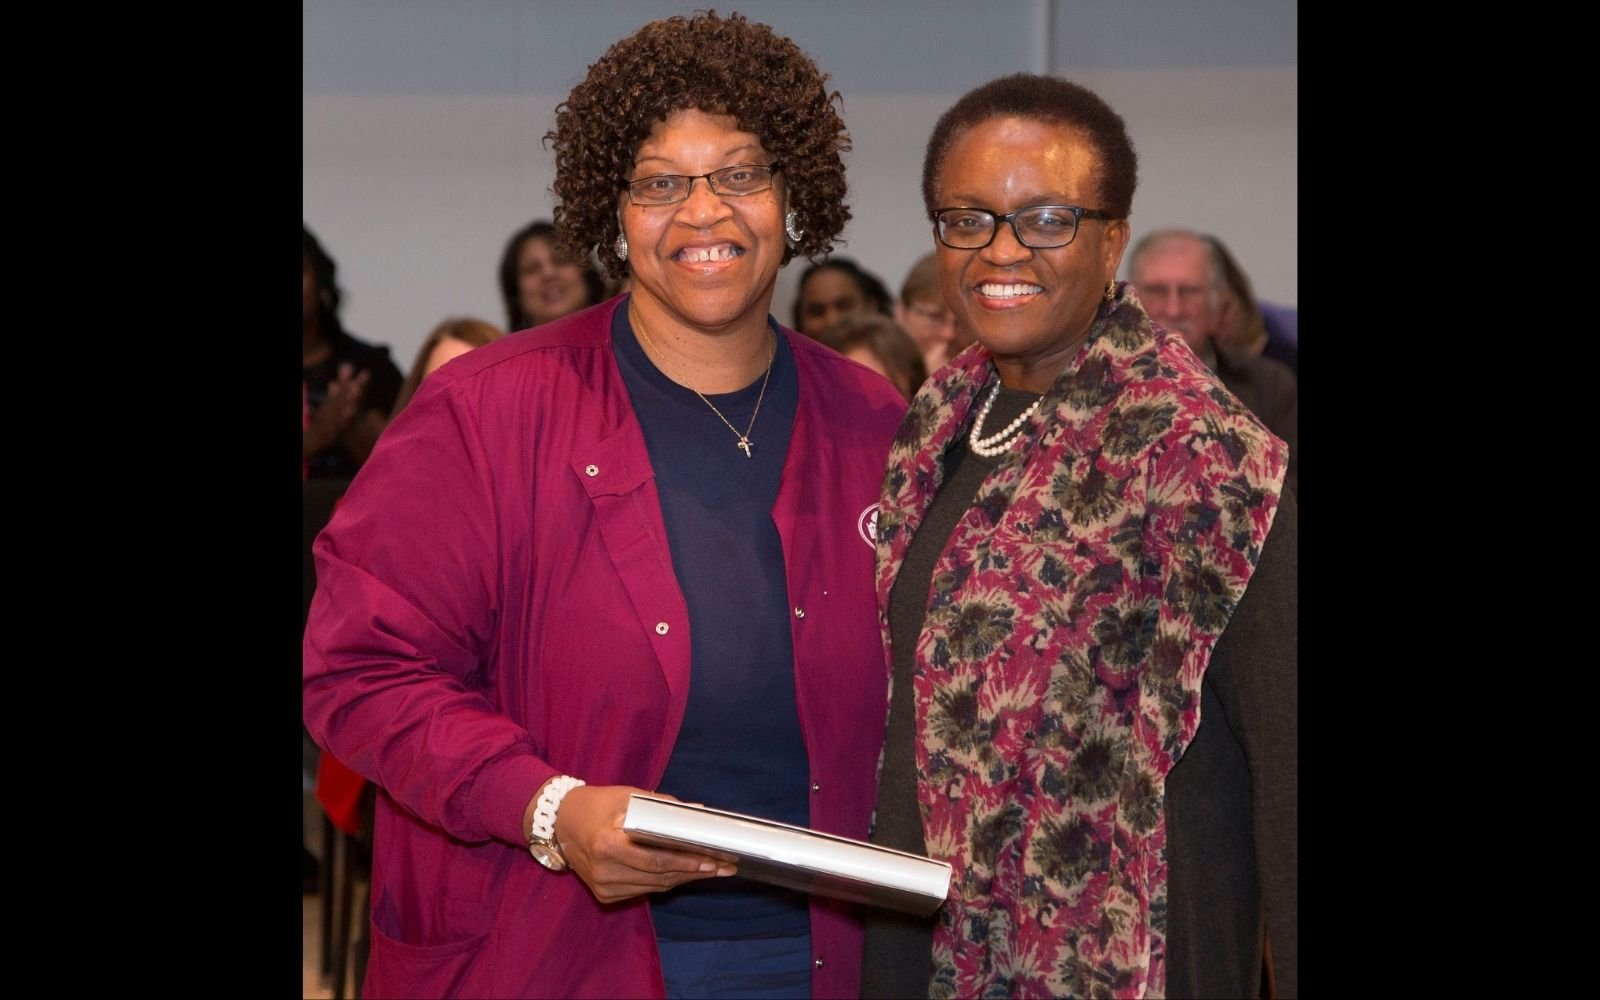 Two woman stand beside each other and embrace, smiling at the camera. The woman on the left wears a garnet jacket and navy top and has shoulder length hair. The woman on the right has close cropped hair and wears glasses and a long patterned jacket.